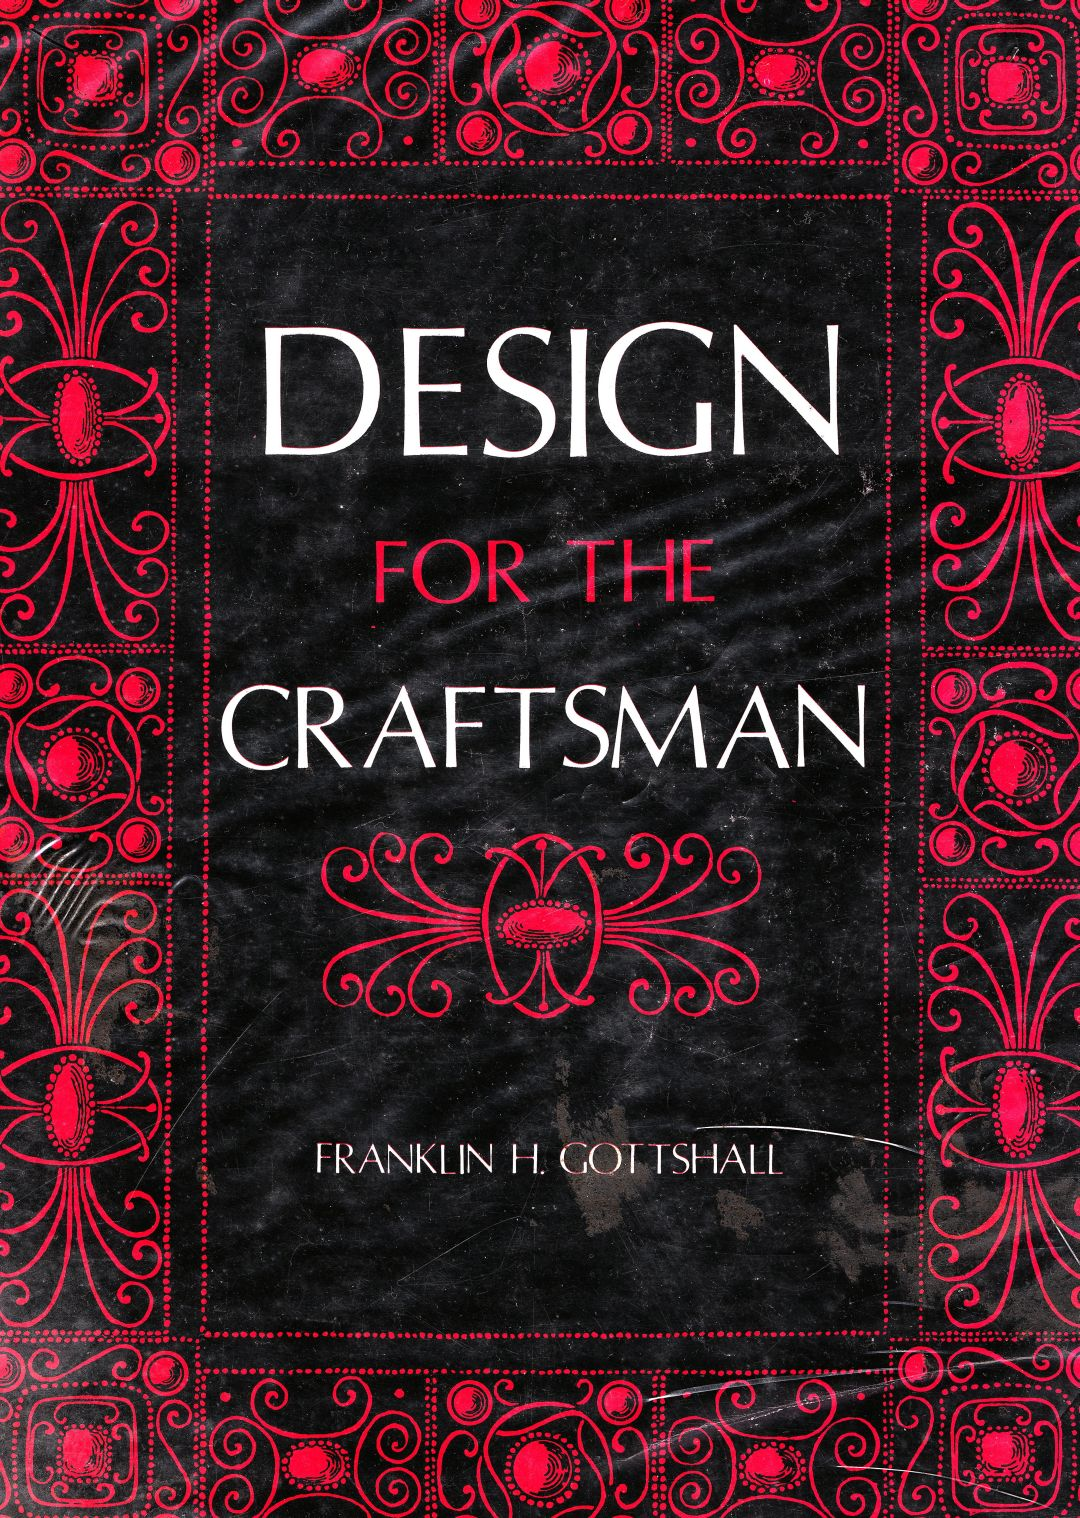 Design for the Craftsman